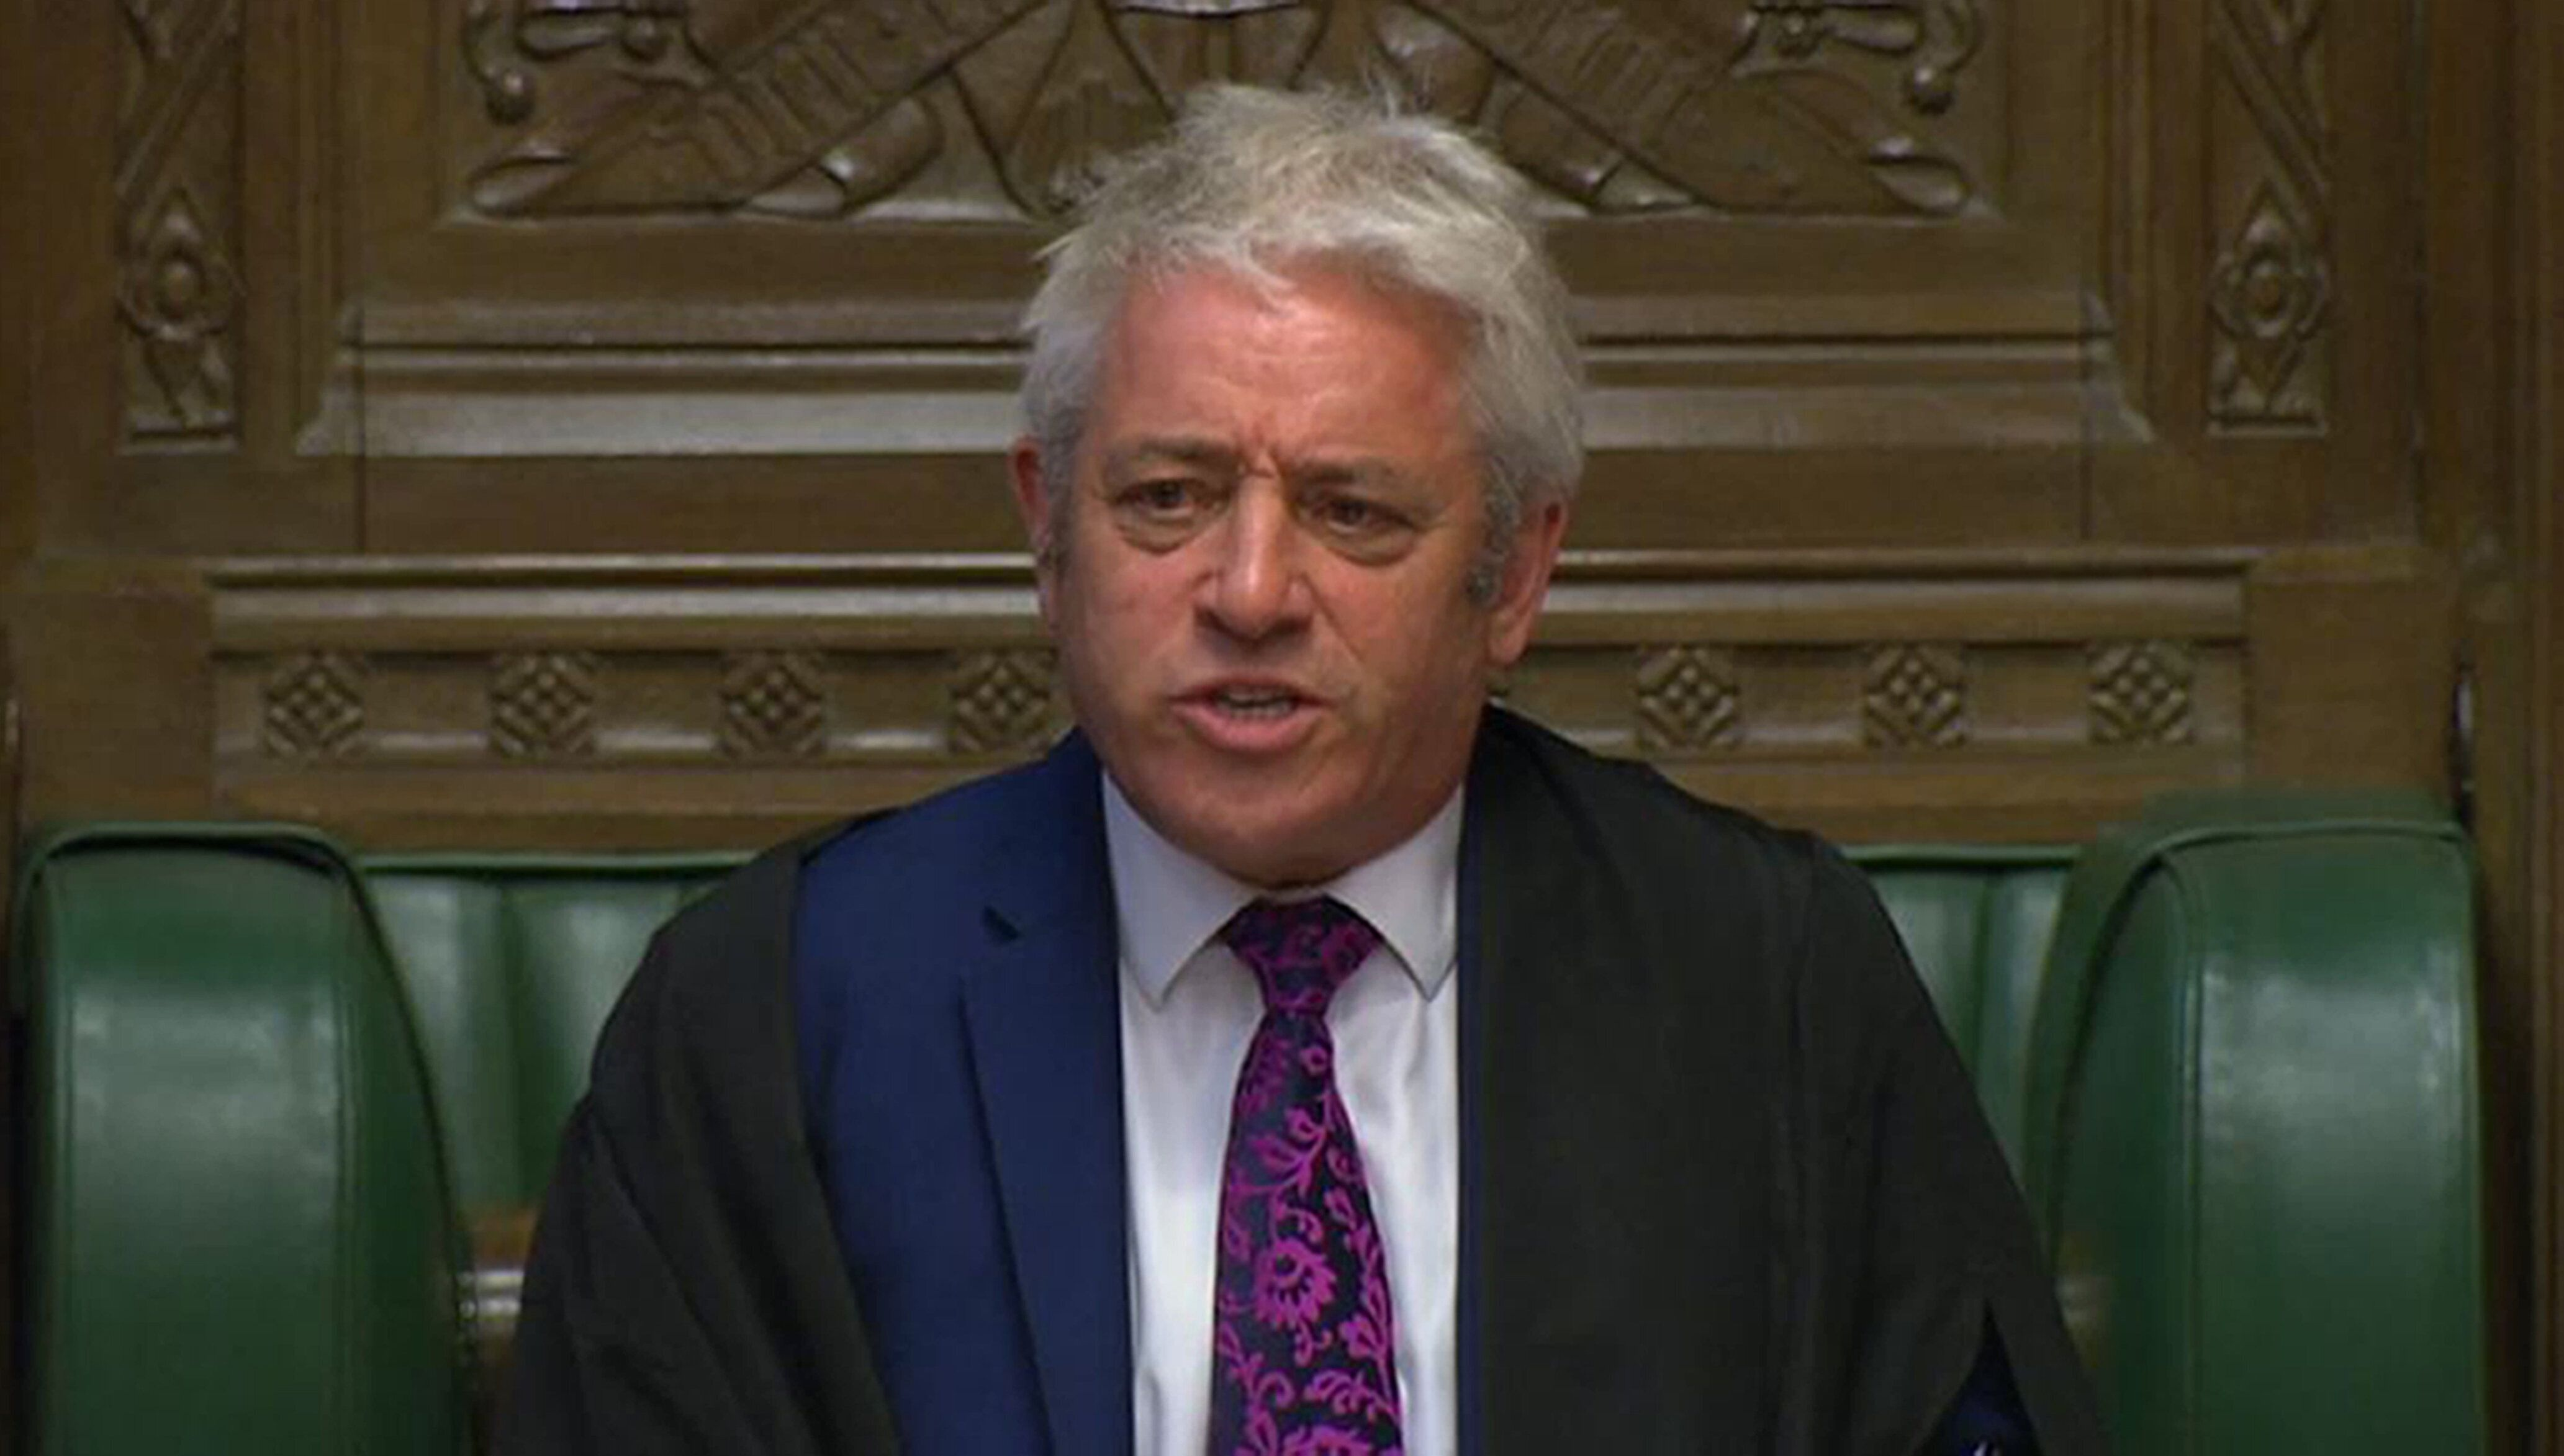 Speaker John Bercow speaks during Prime Minister Theresa May's last Prime Minister's Questions in the House of Commons, Londo